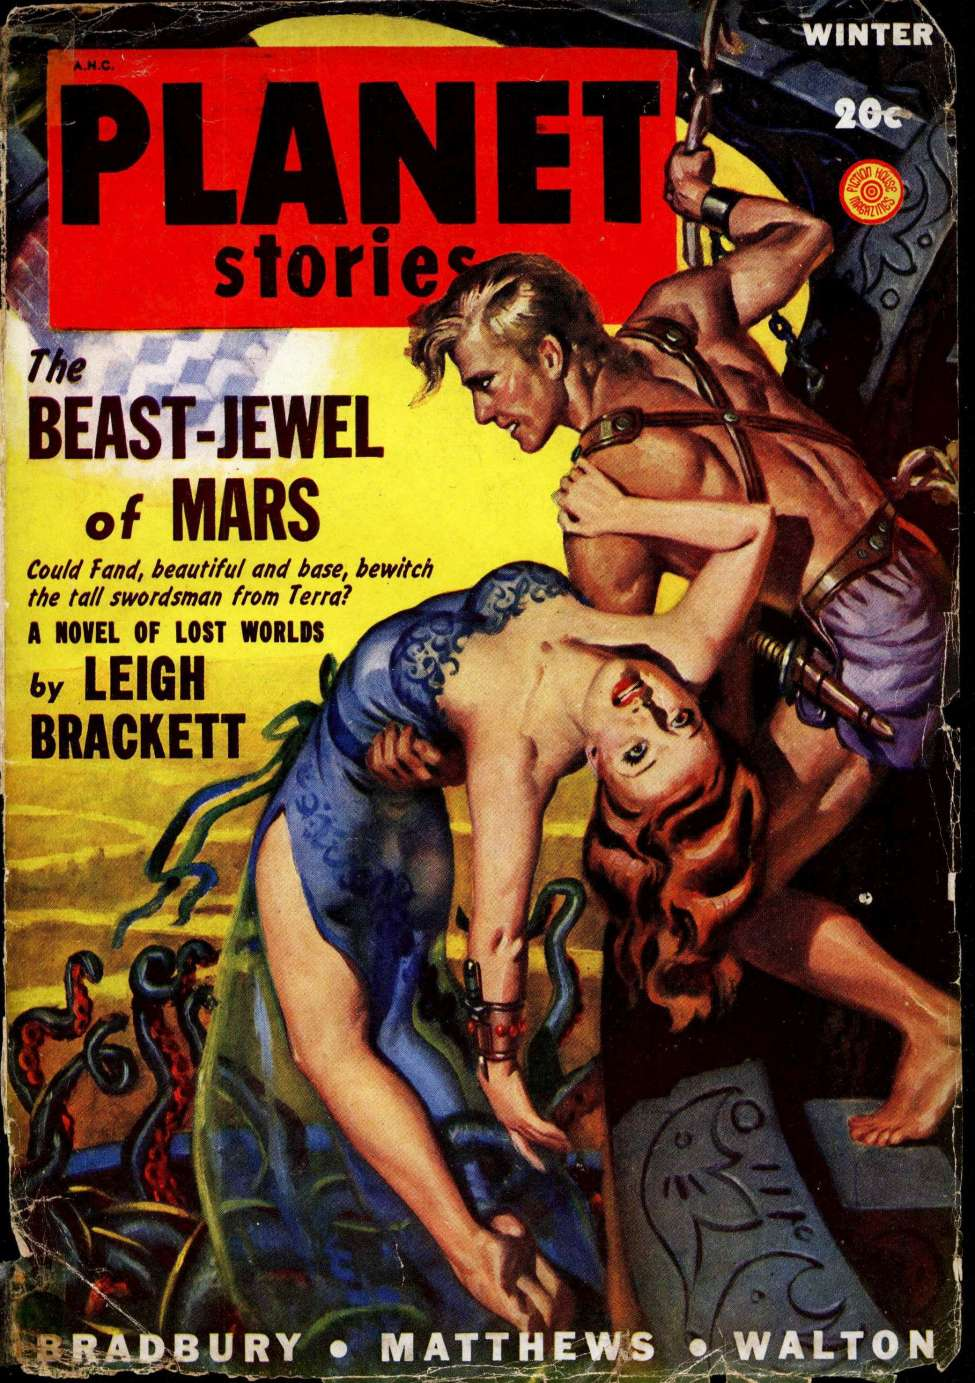 Comic Book Cover For Planet Stories v04 01 - The Beast-Jewel of Mars - Leigh Brackett